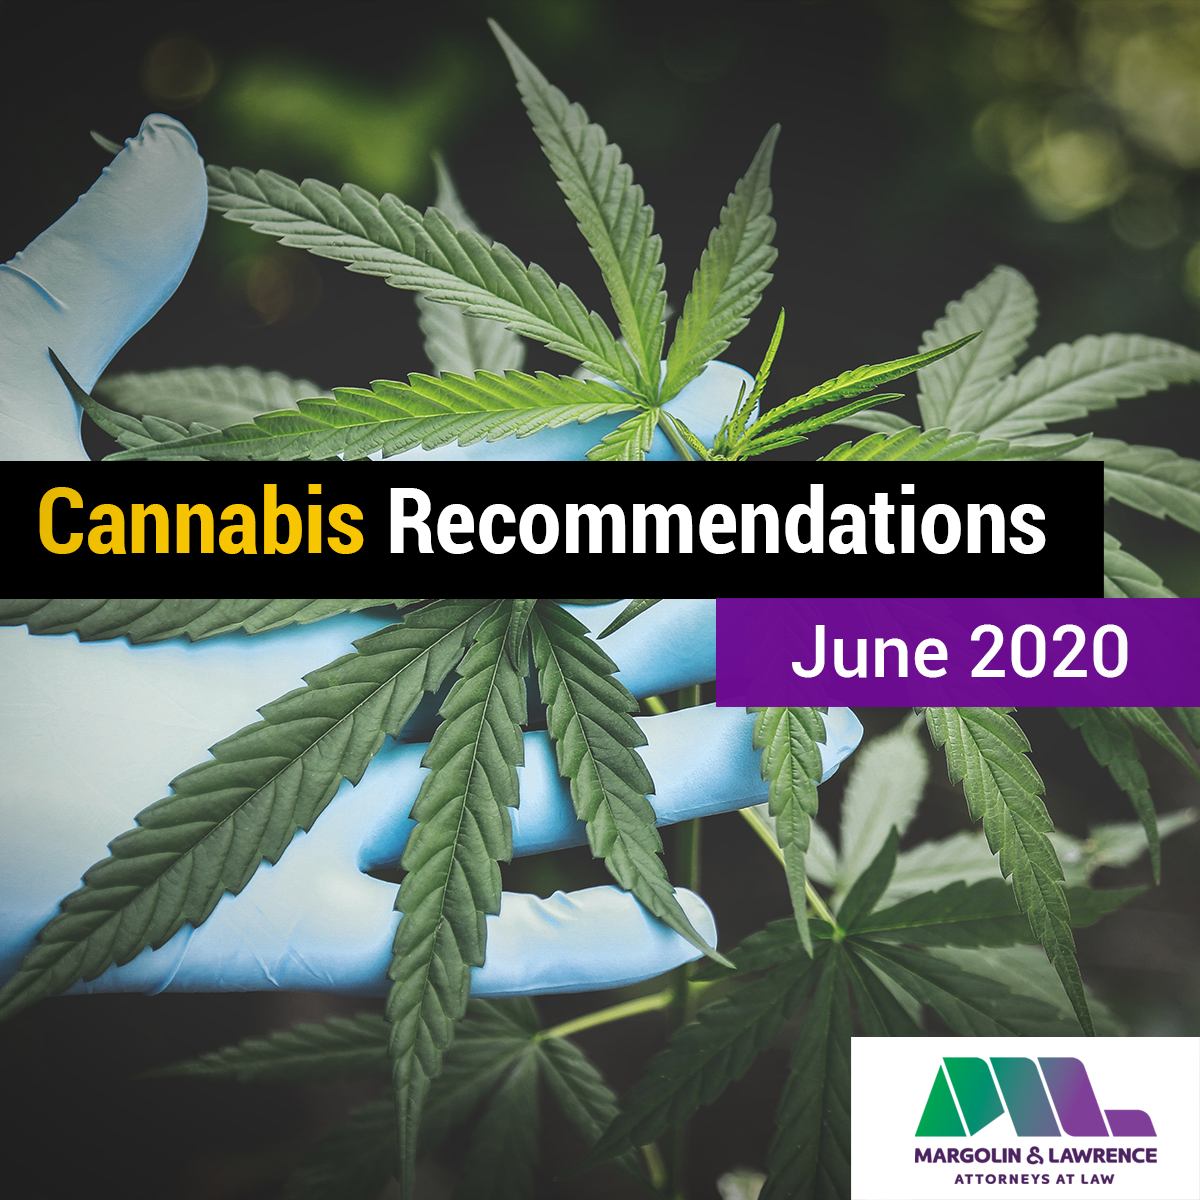 Cannabis Recommendations June 2020